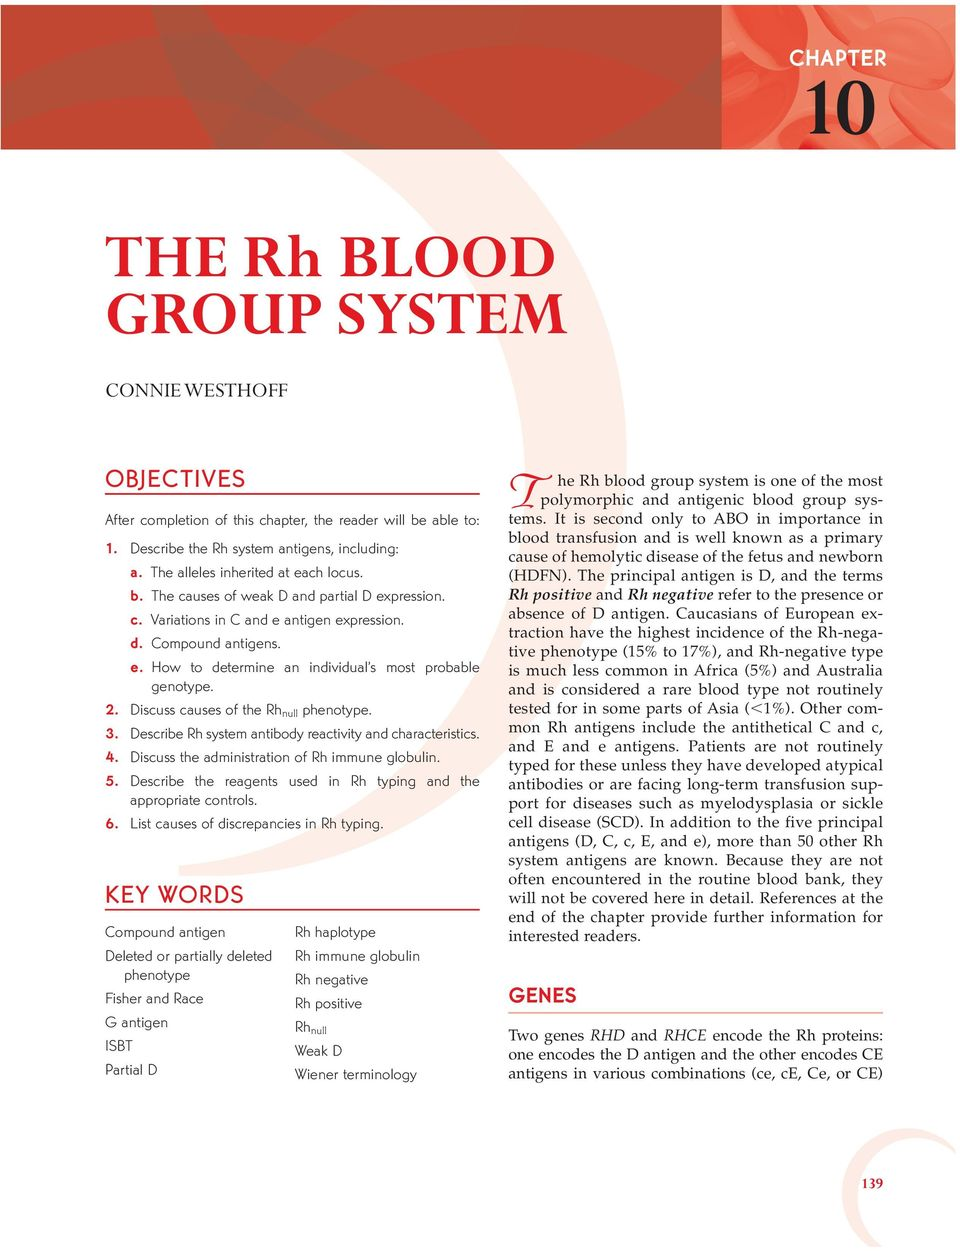 2. Discuss causes of the Rh null phenotype. 3. Describe Rh system antibody reactivity and characteristics. 4. Discuss the administration of Rh immune globulin. 5.